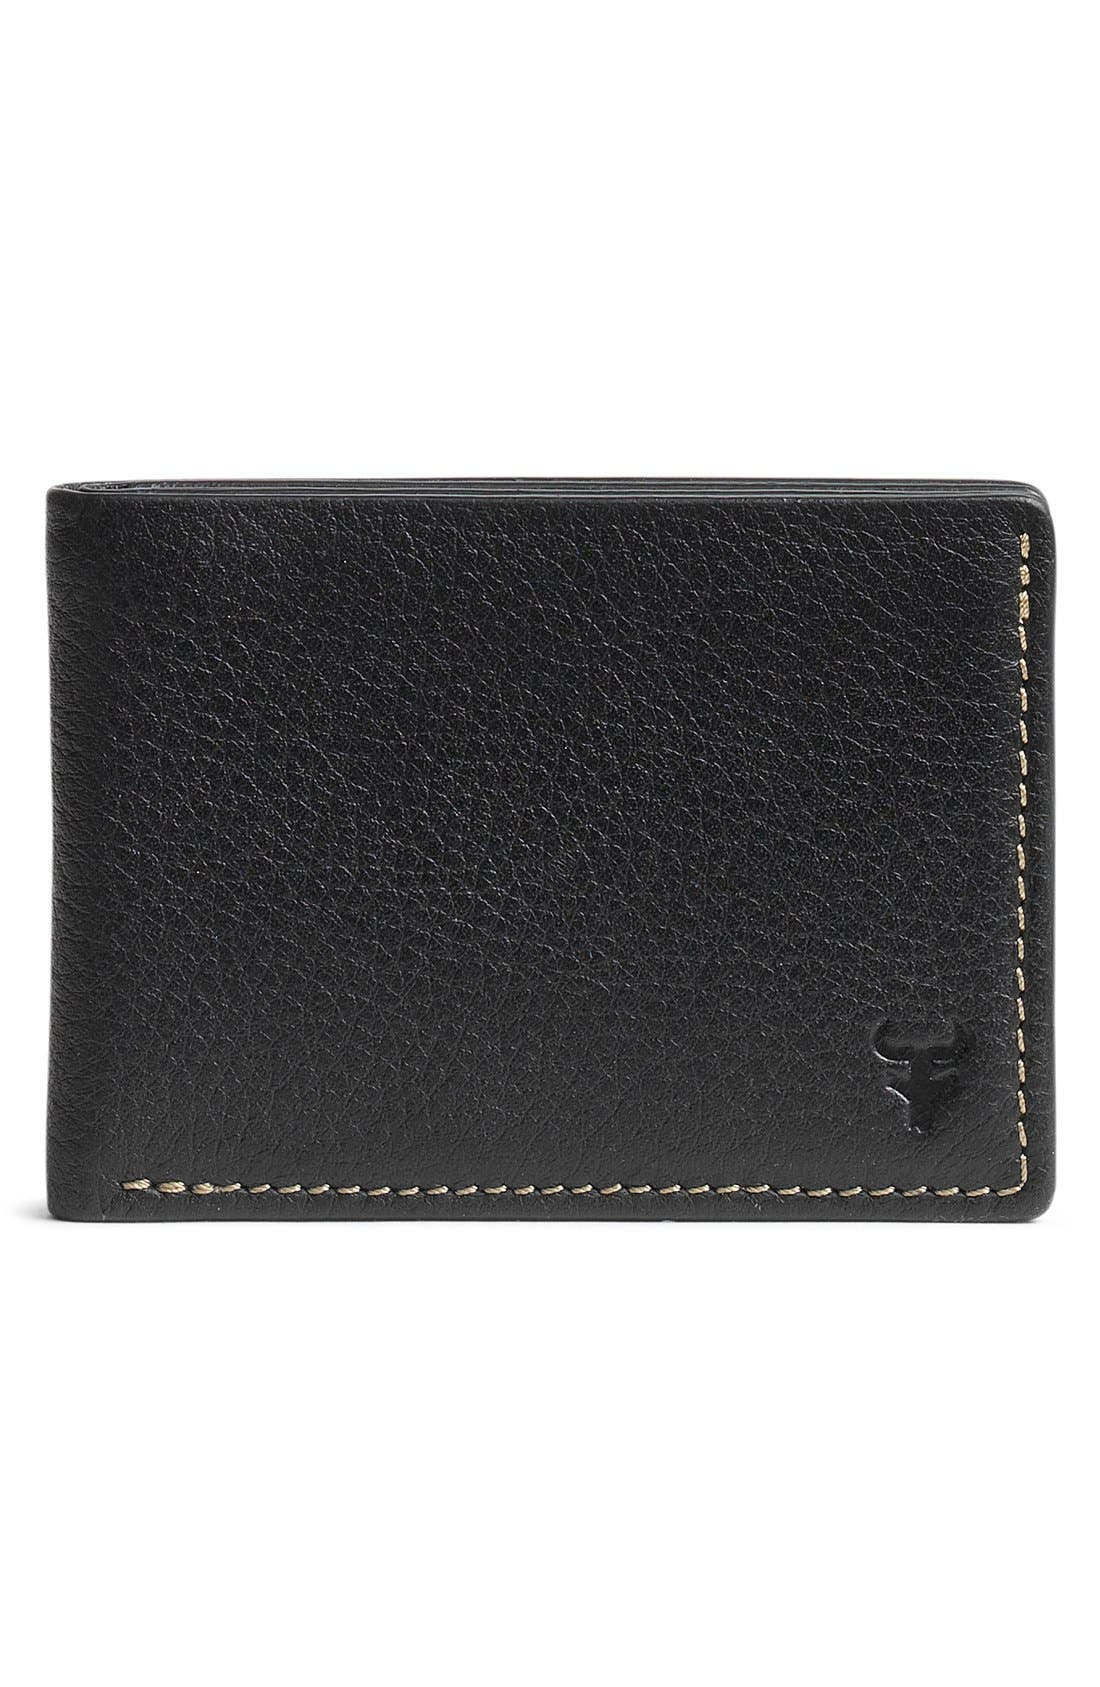 'Jackson' Super Slim Leather Wallet,                             Main thumbnail 1, color,                             BLACK